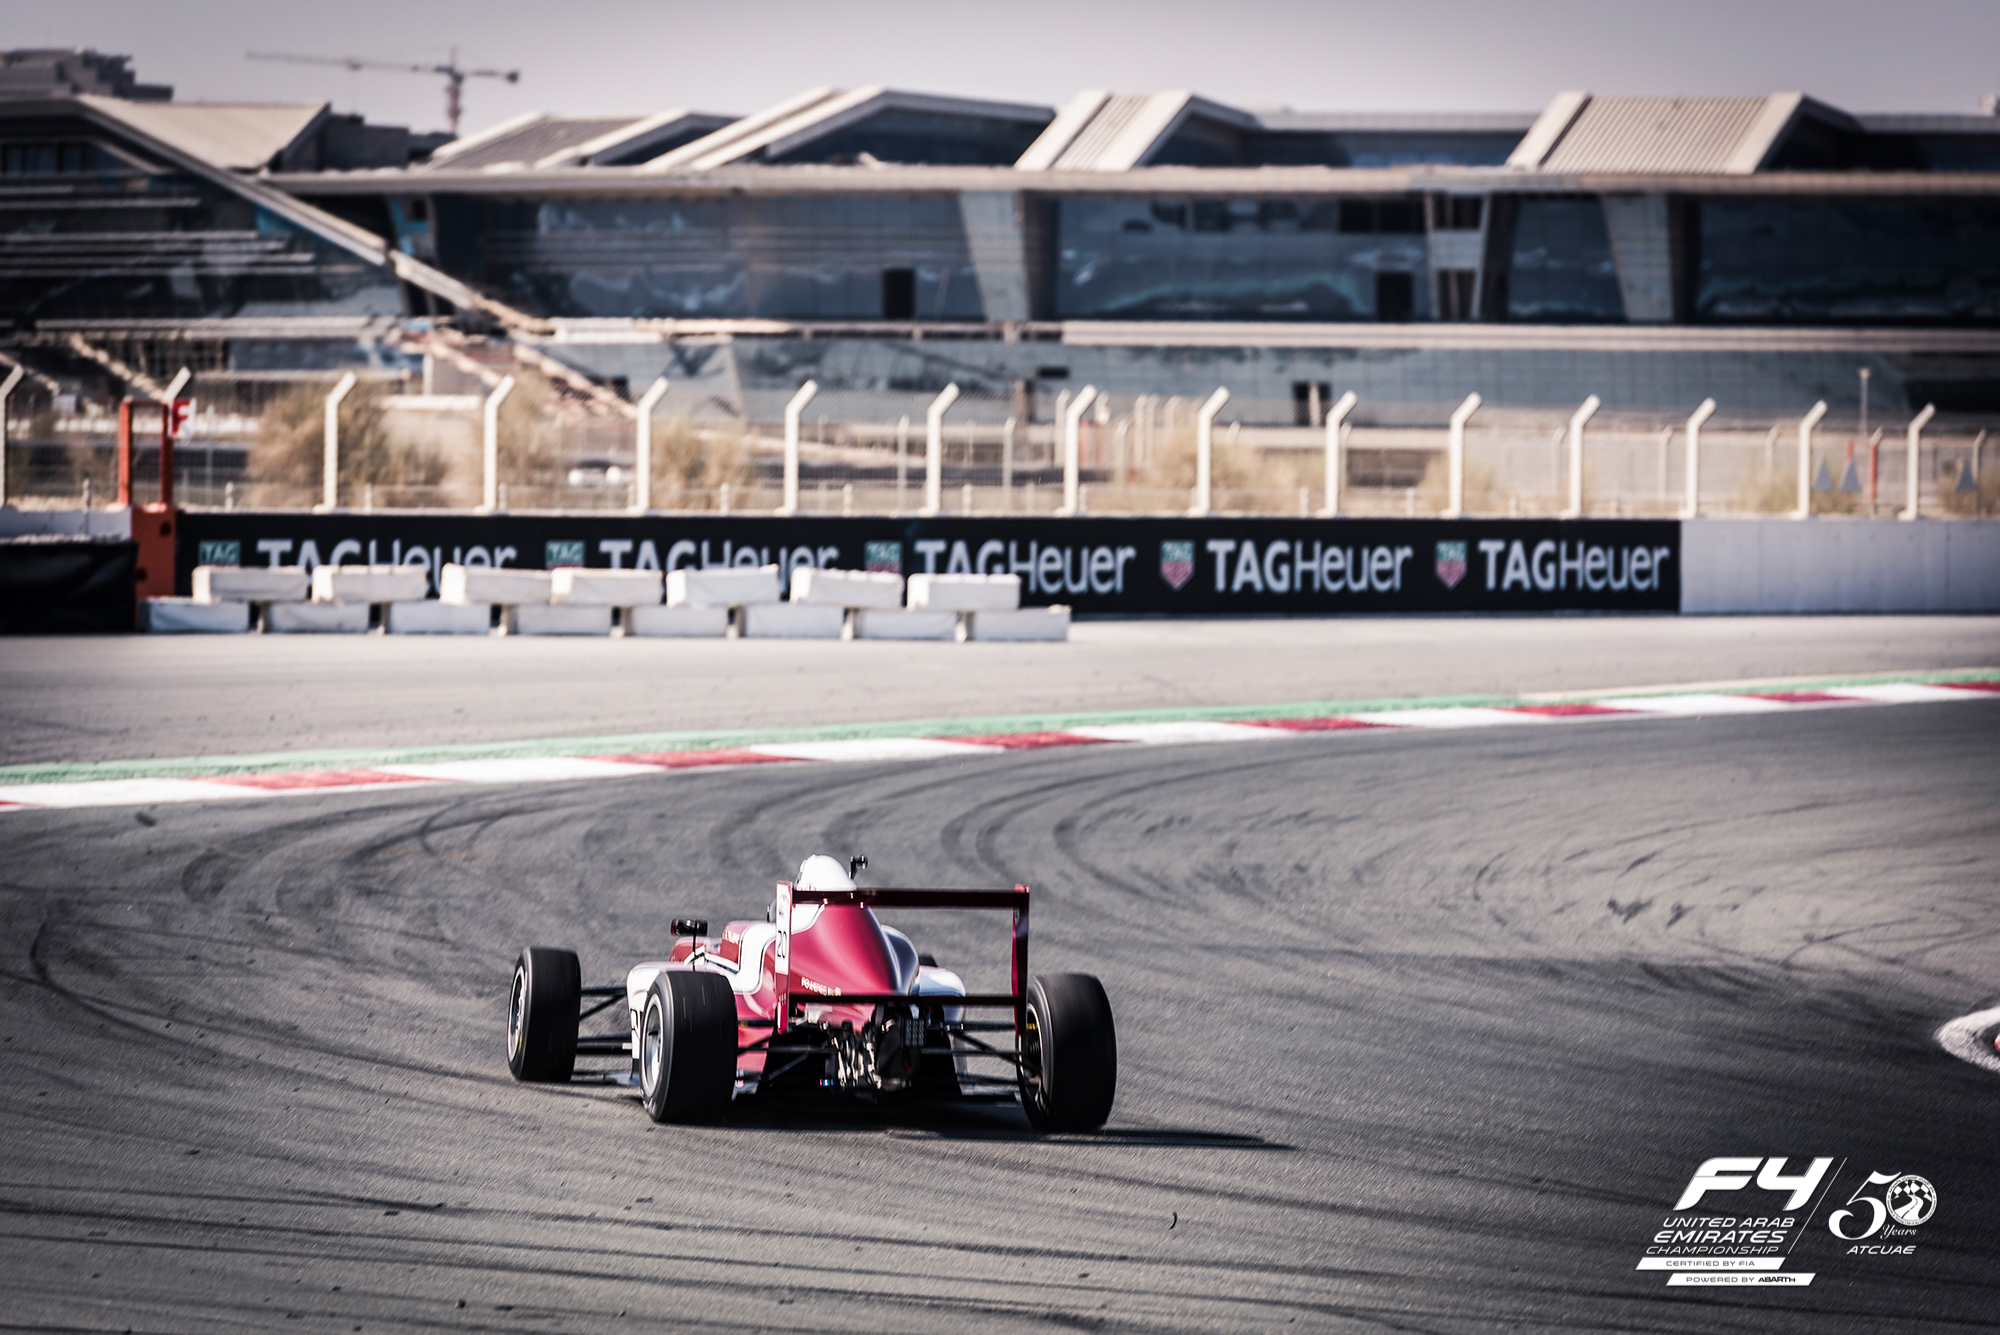 2016 10 30   Racing   Second Round   F4   Dubai    27 Of 34